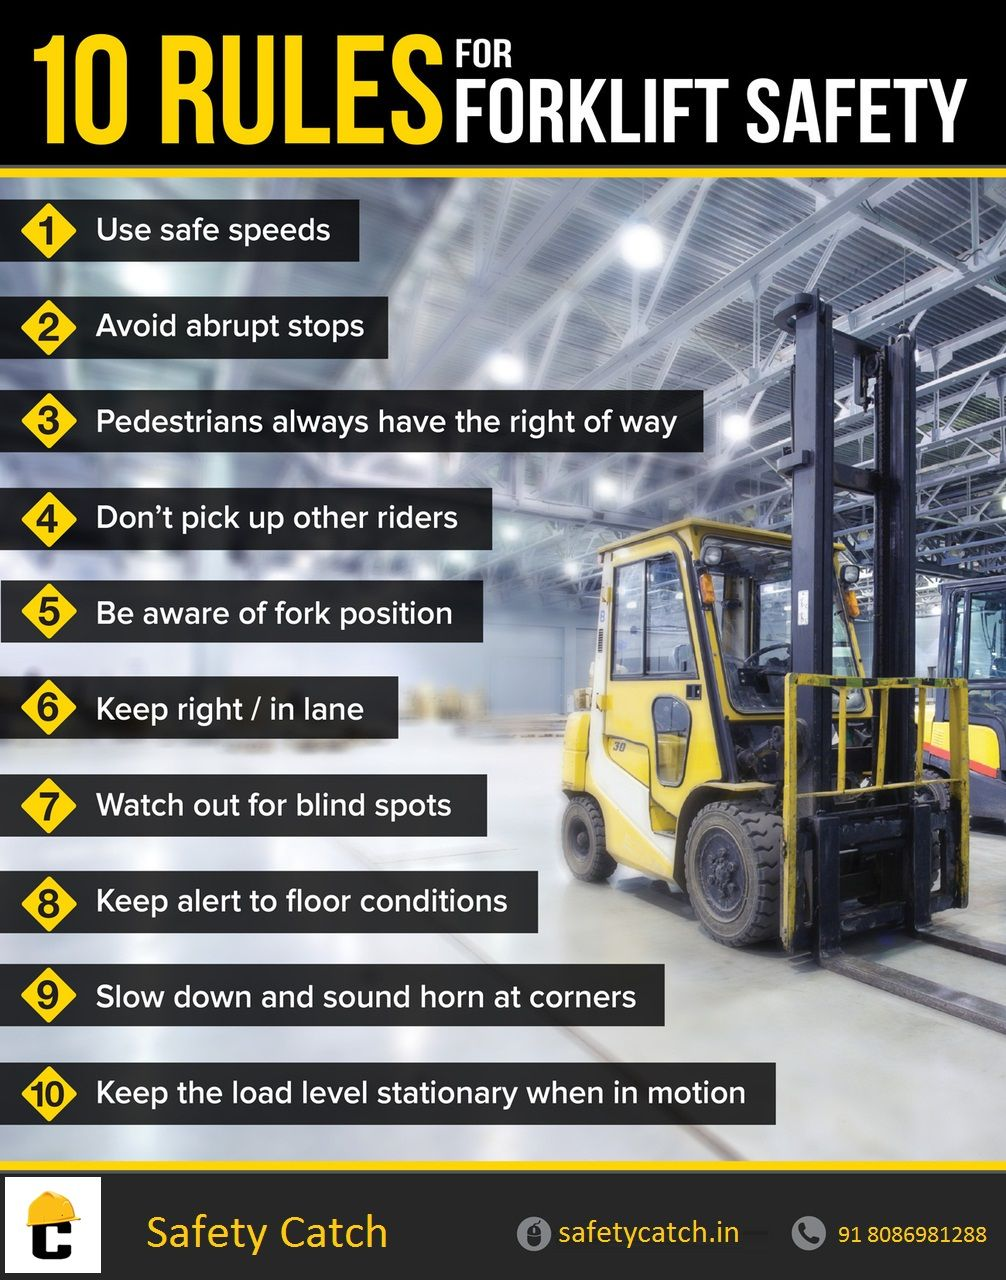 Forklift safety tips for safety workers safety tips 10 rules for forklift safety forklift training 1betcityfo Images